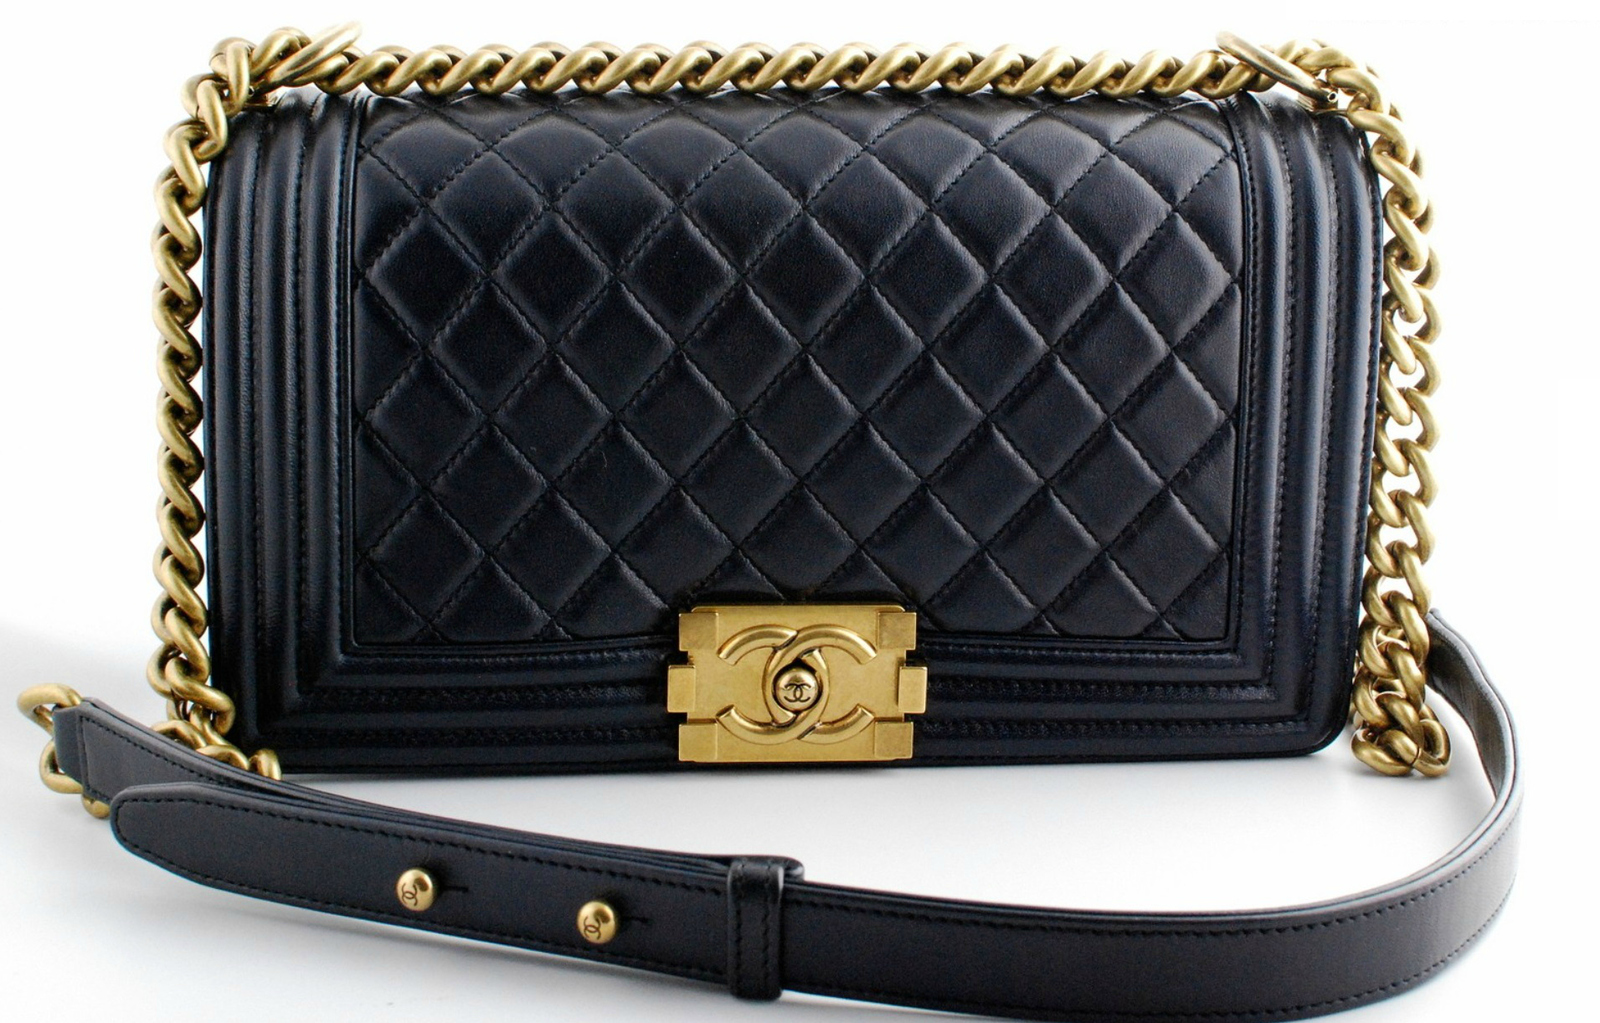 AUTHENTIC CHANEL PEARLY BLACK QUILTED LAMBSKIN MEDIUM BOY FLAP BAG GHW